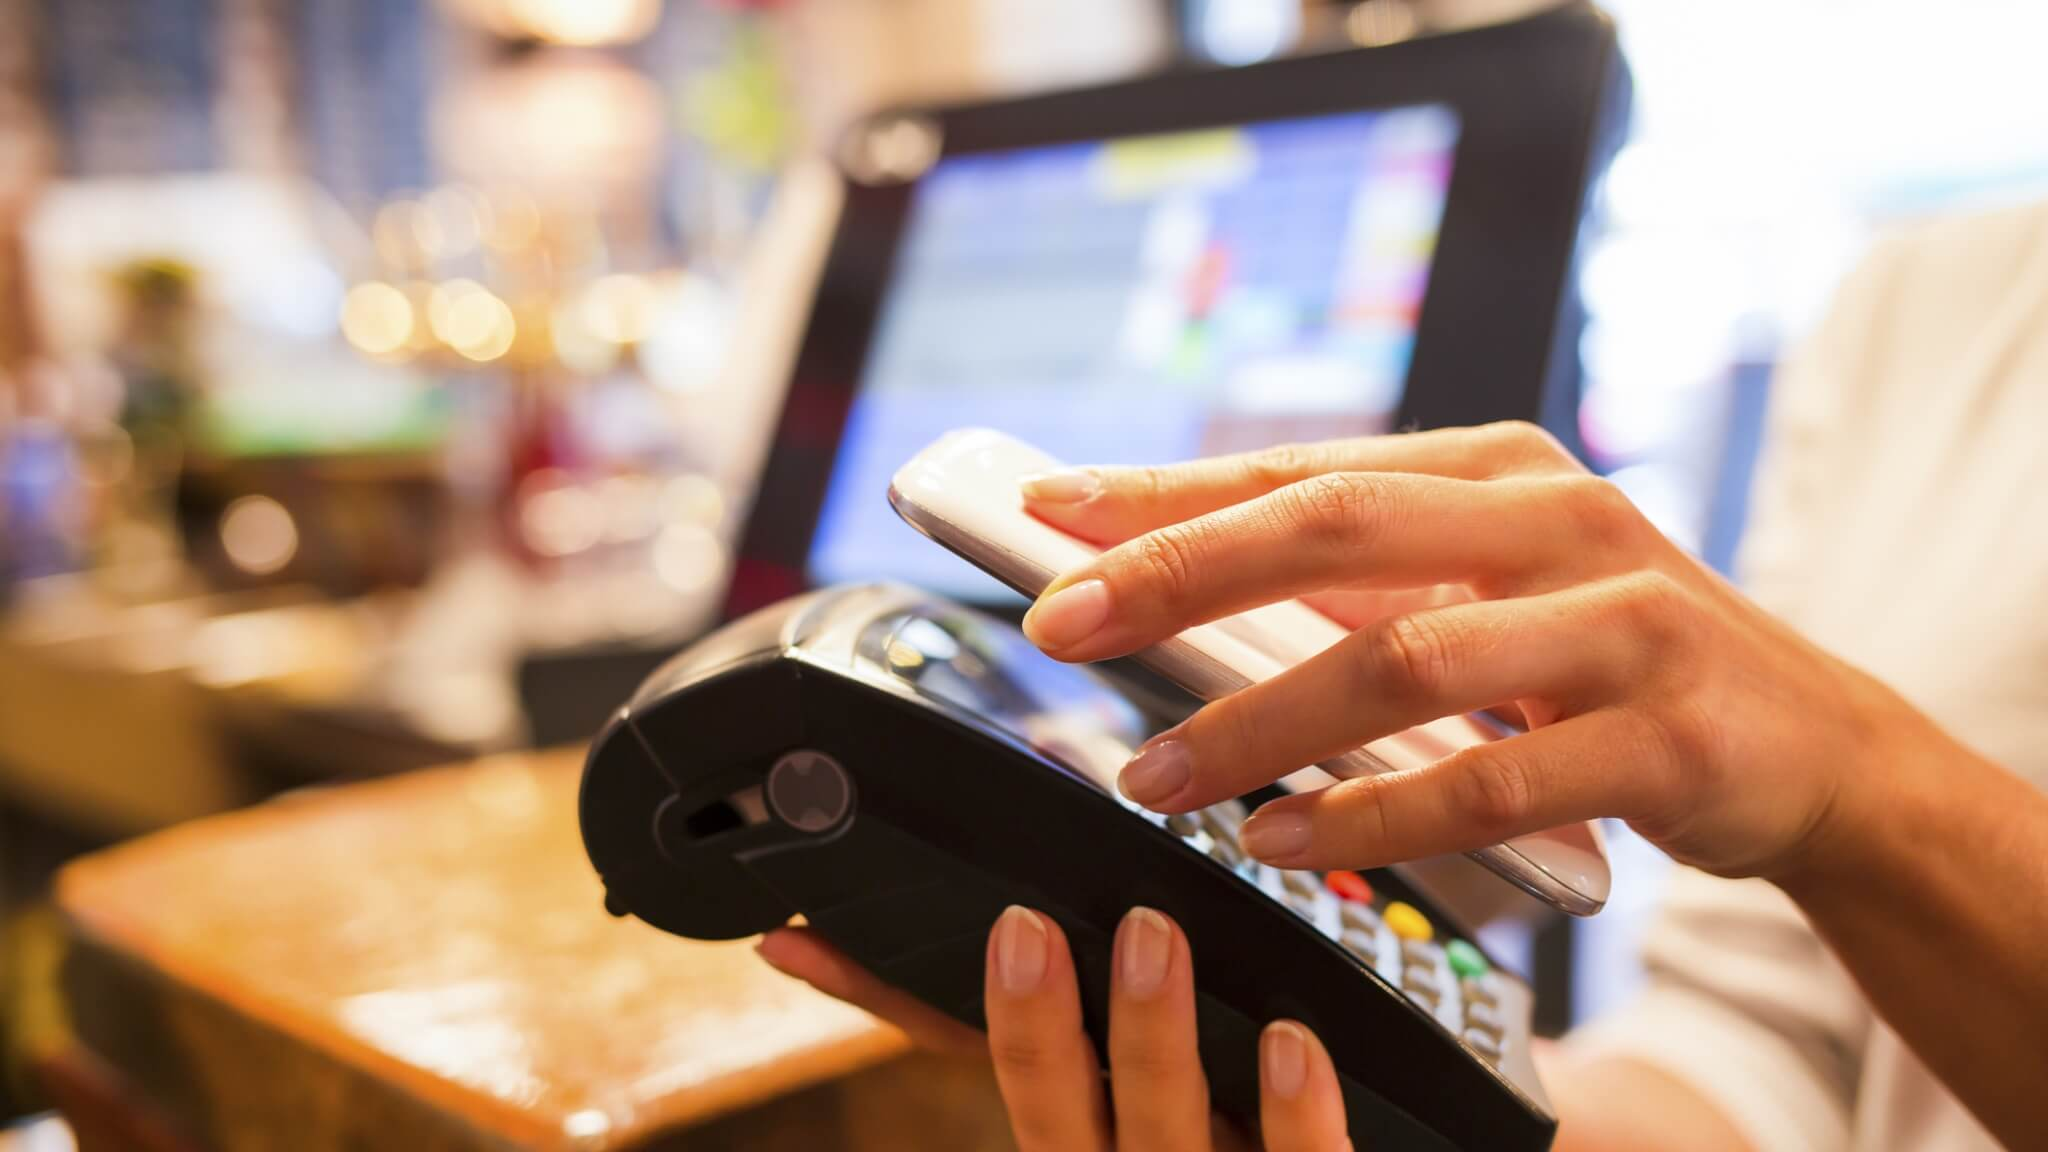 Why Apple Pay Means Business